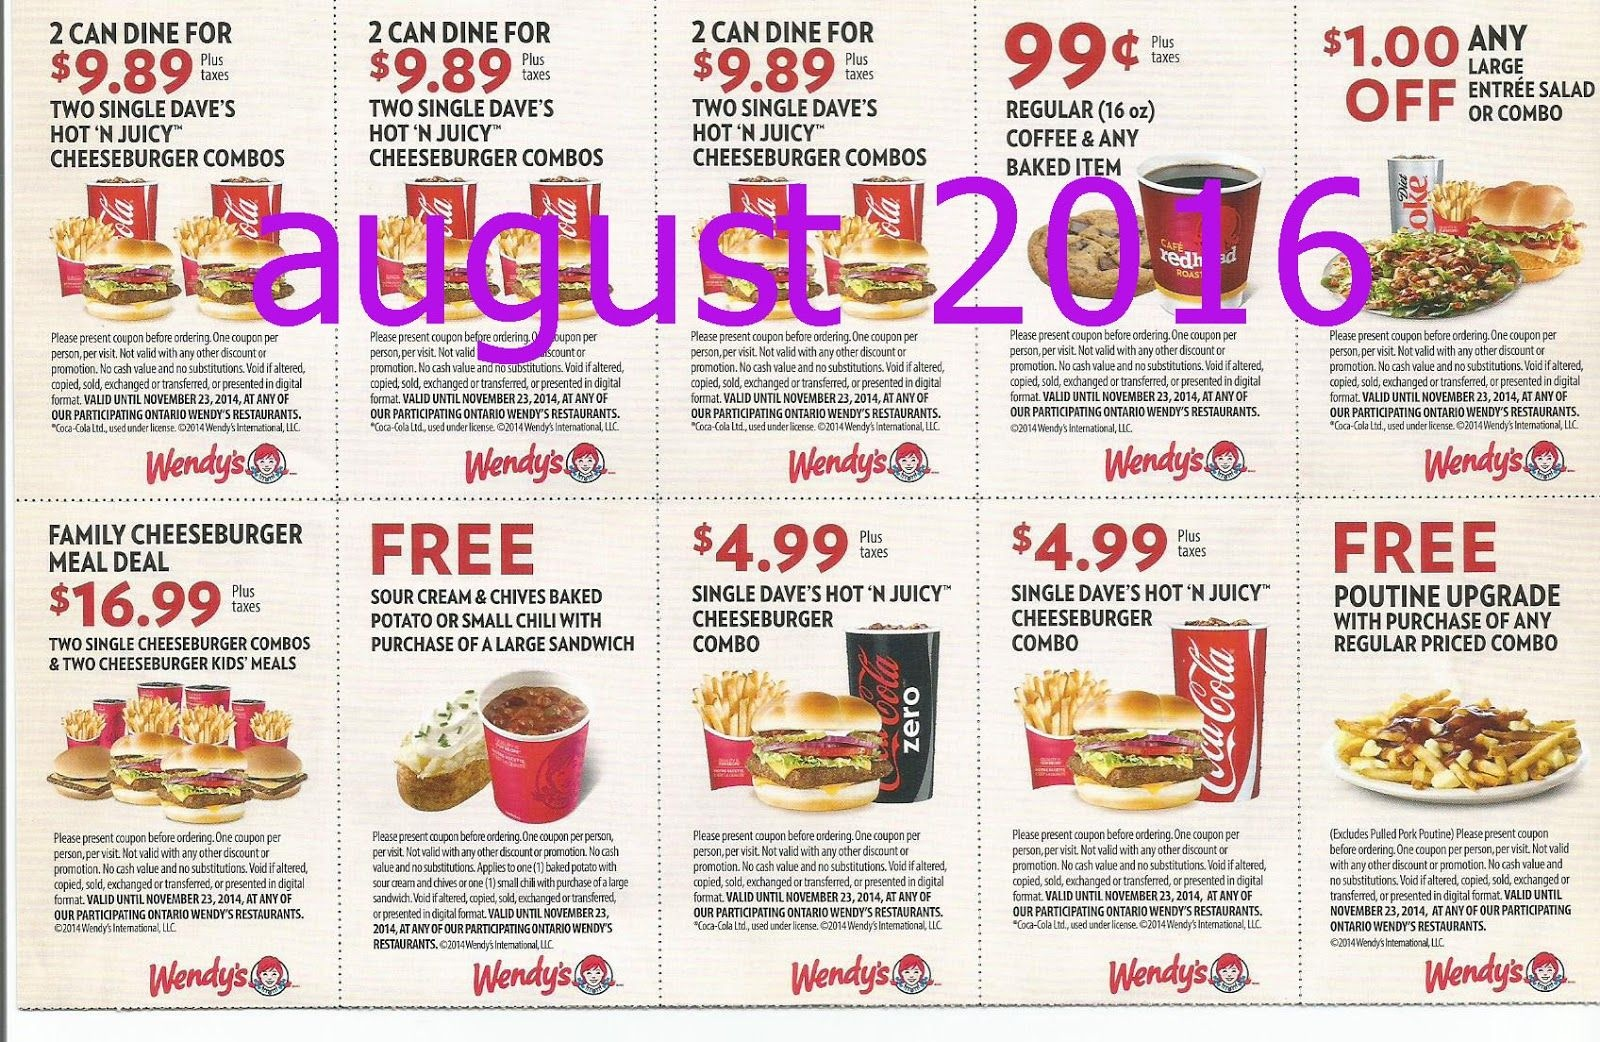 Free Printable Coupons: Wendys Coupons | Fast Food Coupons | Wendys - Free Printable Coupons Ontario